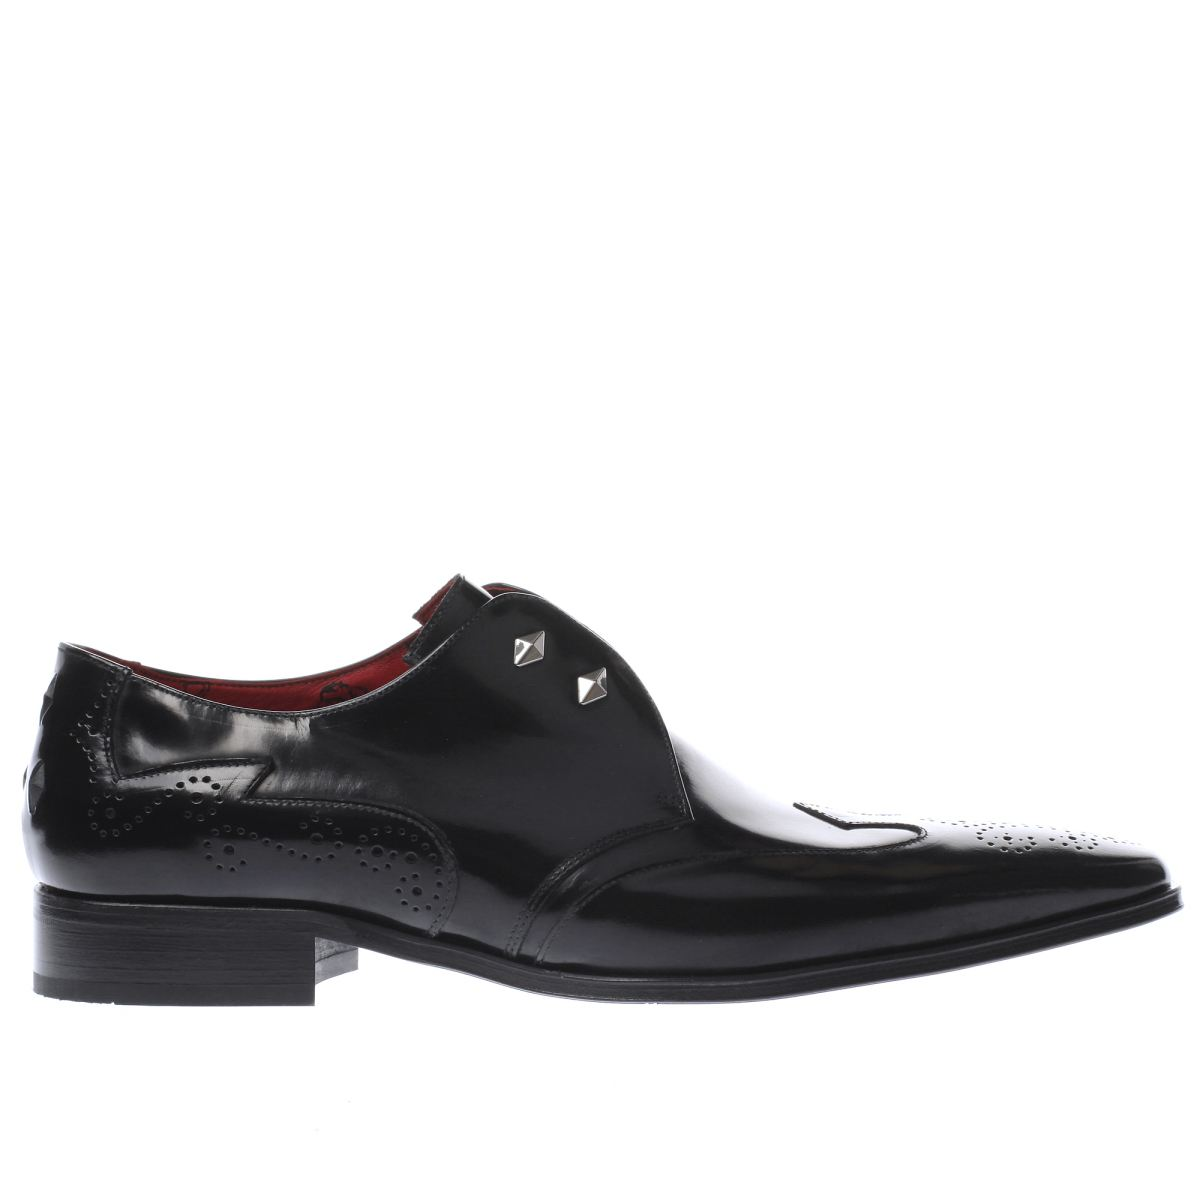 jeffery west black escobar diamond ghill shoes